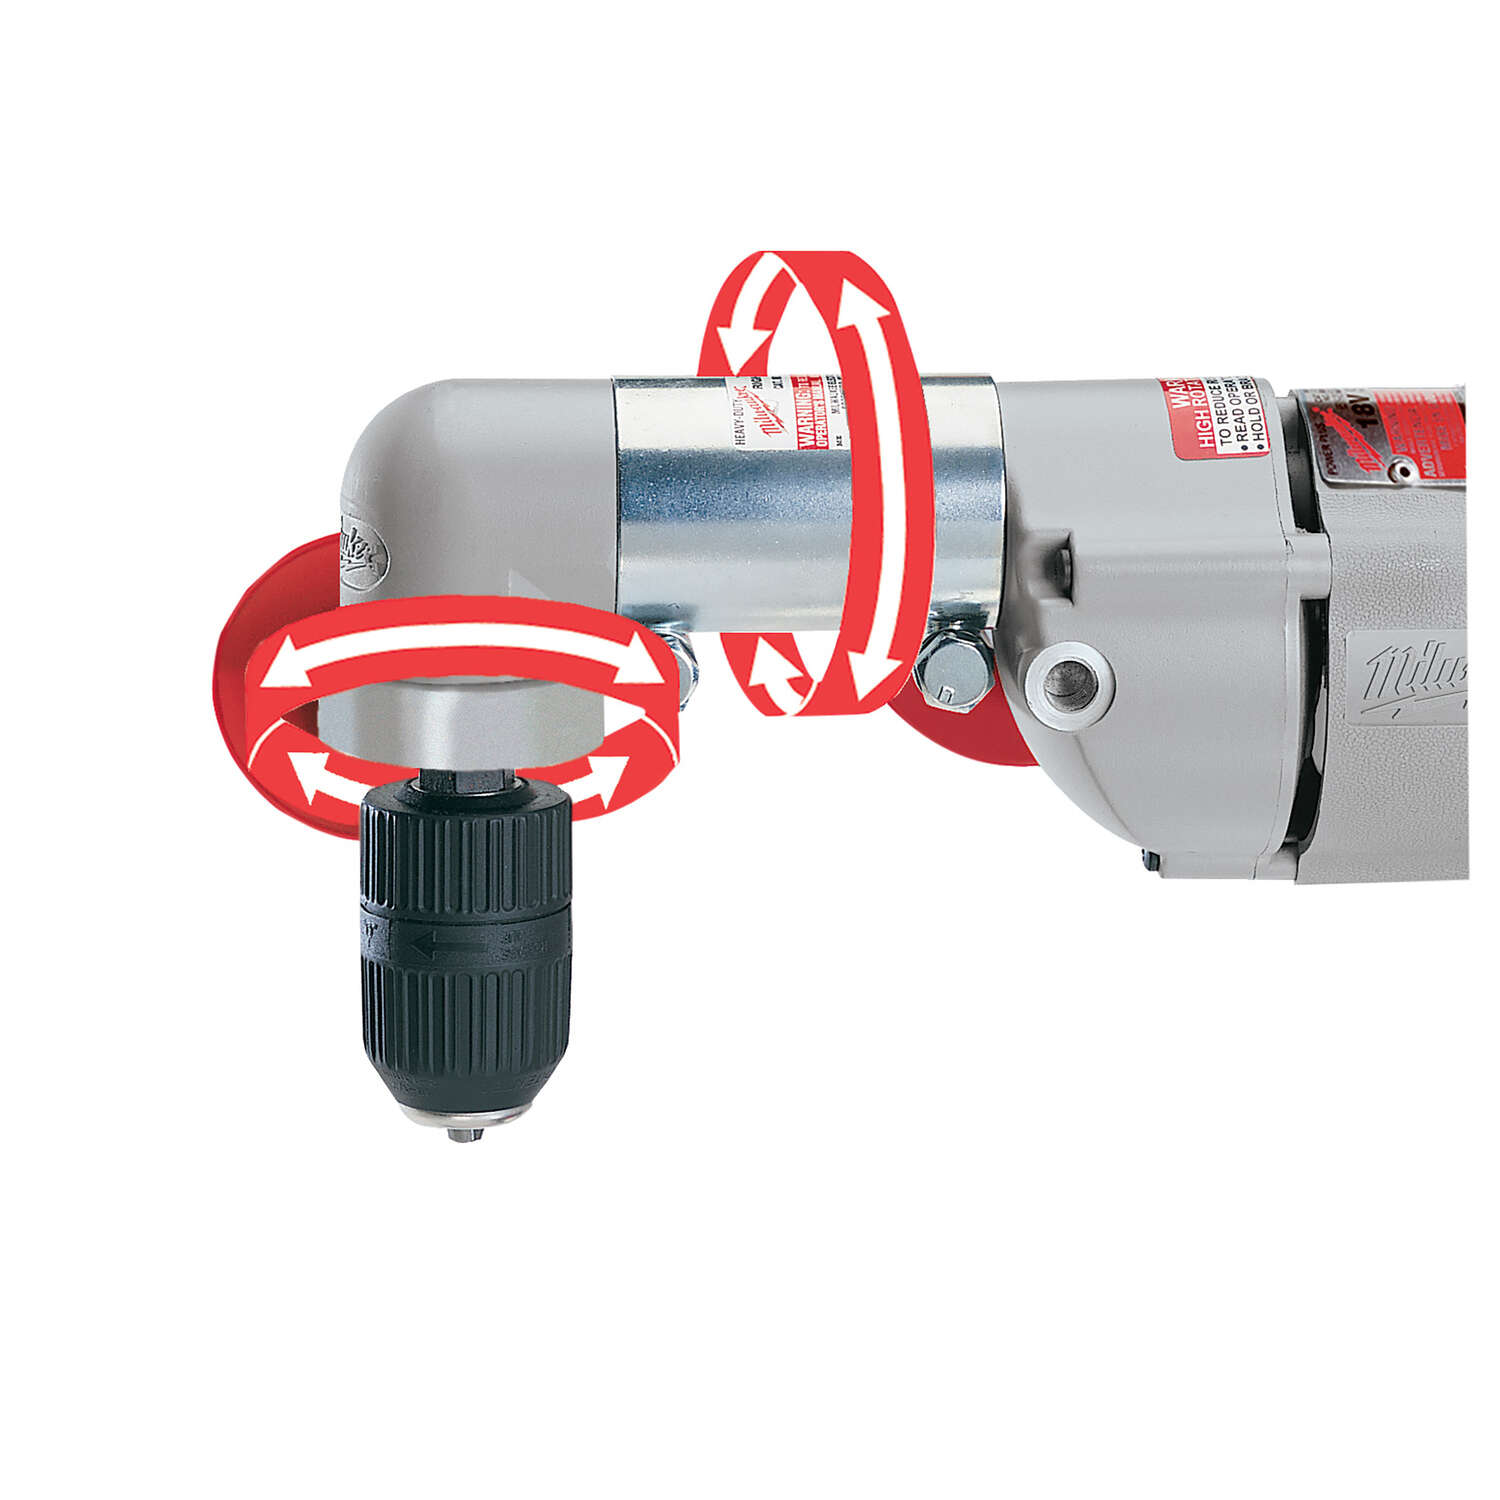 Milwaukee  1/2 in. Keyed  Angled  Corded Angle Drill  7 amps 750 rpm